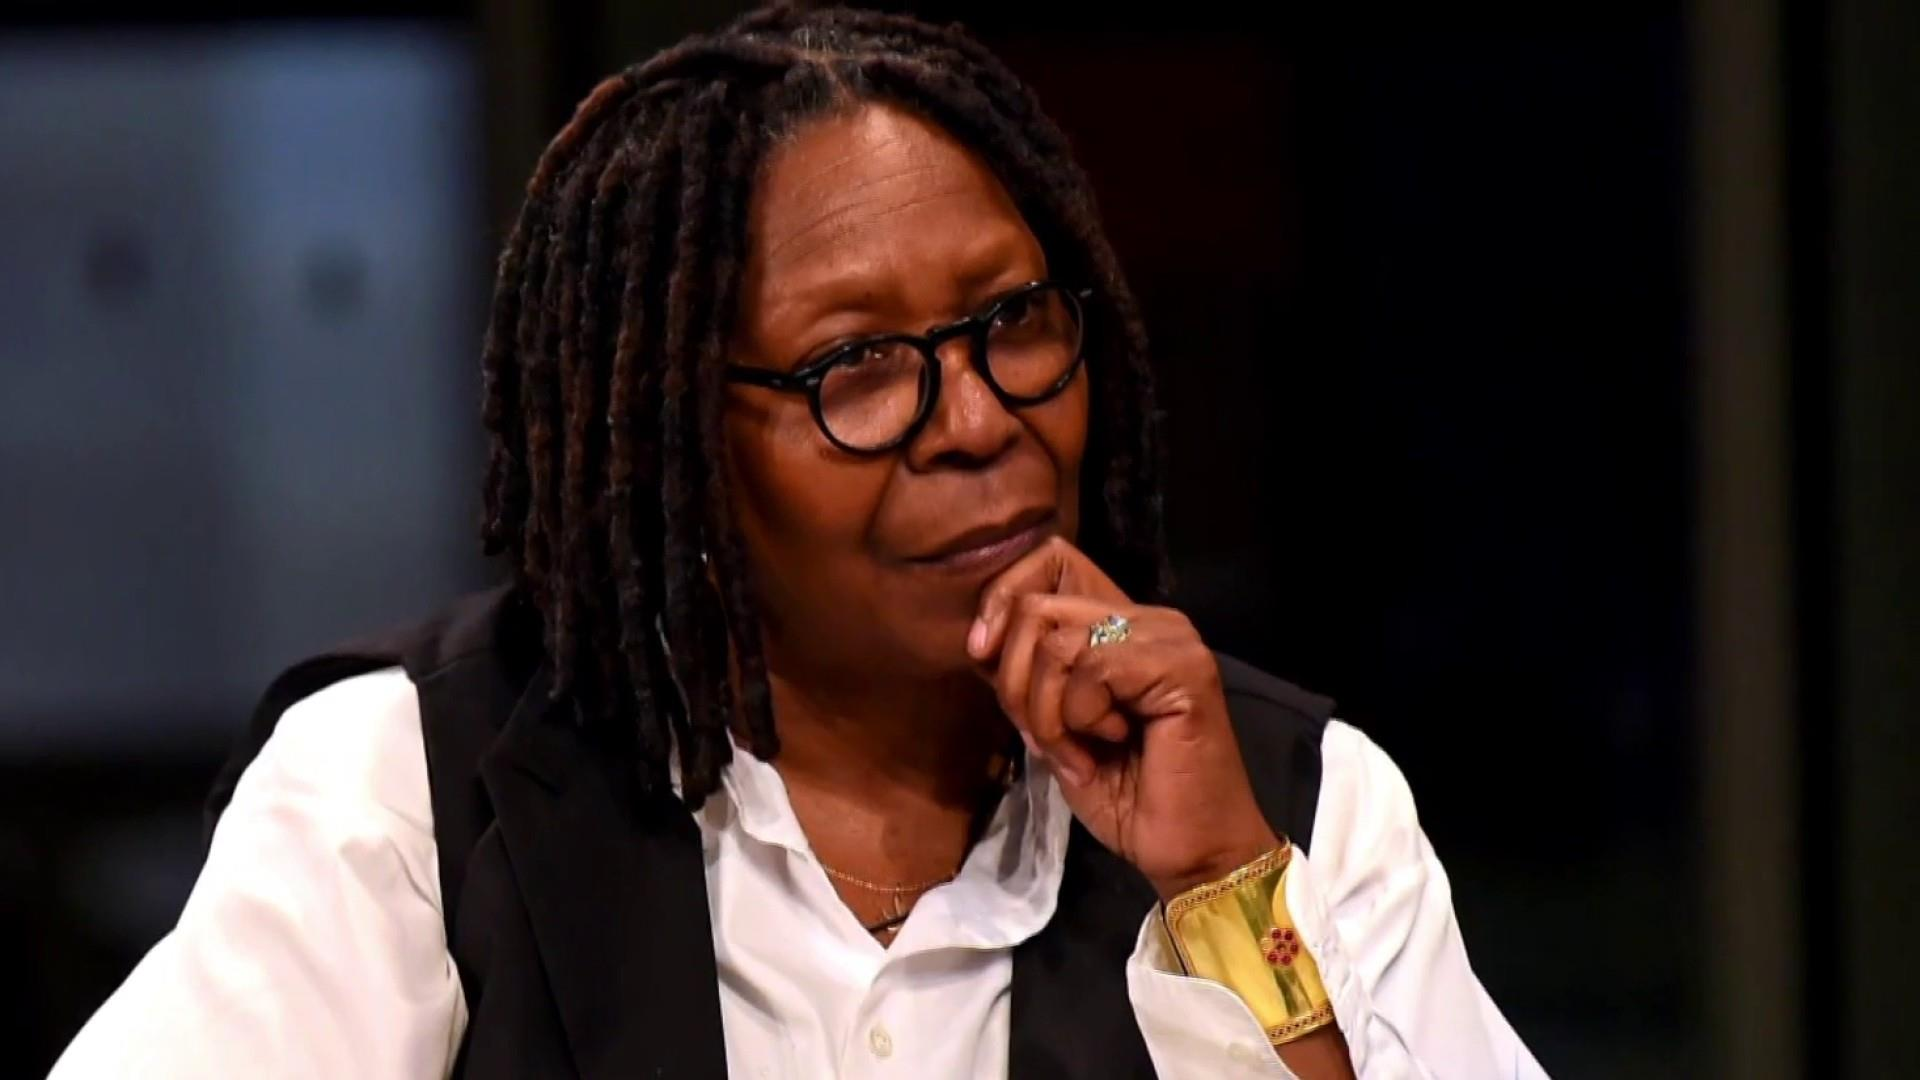 Whoopi Goldberg Returns to 'The View' After Pneumonia